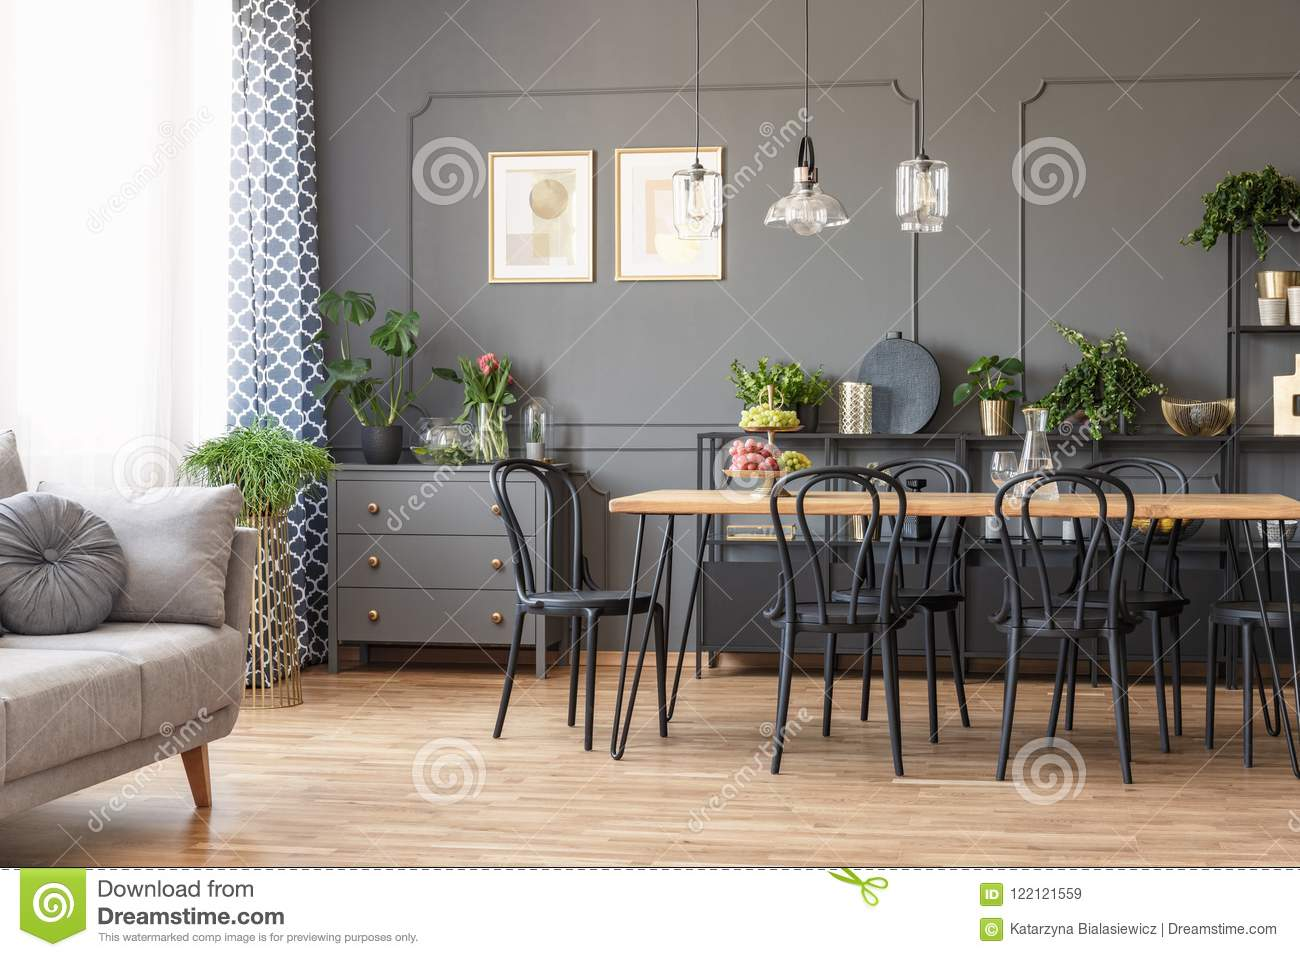 Real Photo Of A Dark Flat Interior With Gray Couch Wooden Dining Table Black Chairs And Golden Posters On The Wall In Open Stock Image Image Of Chairs Glass 122121559